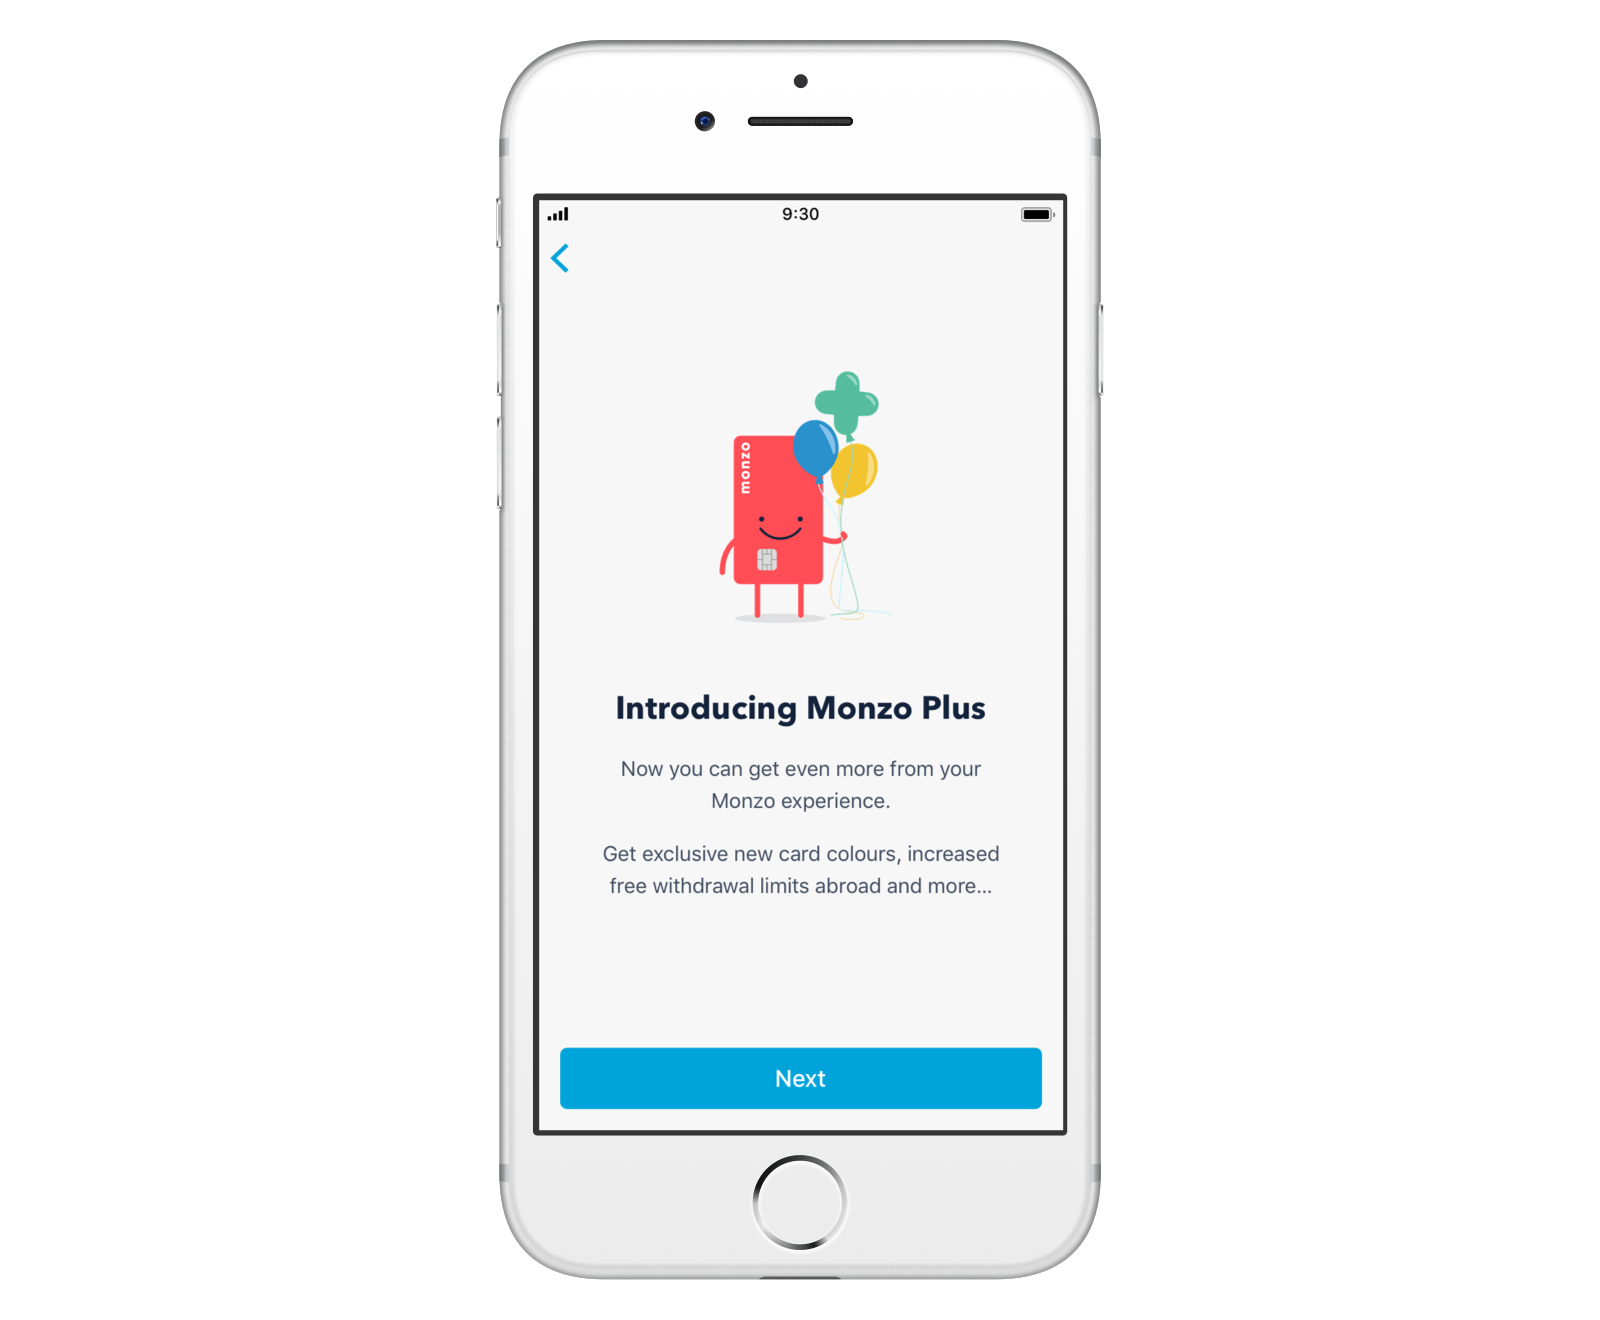 Screen introducing Monzo Plus